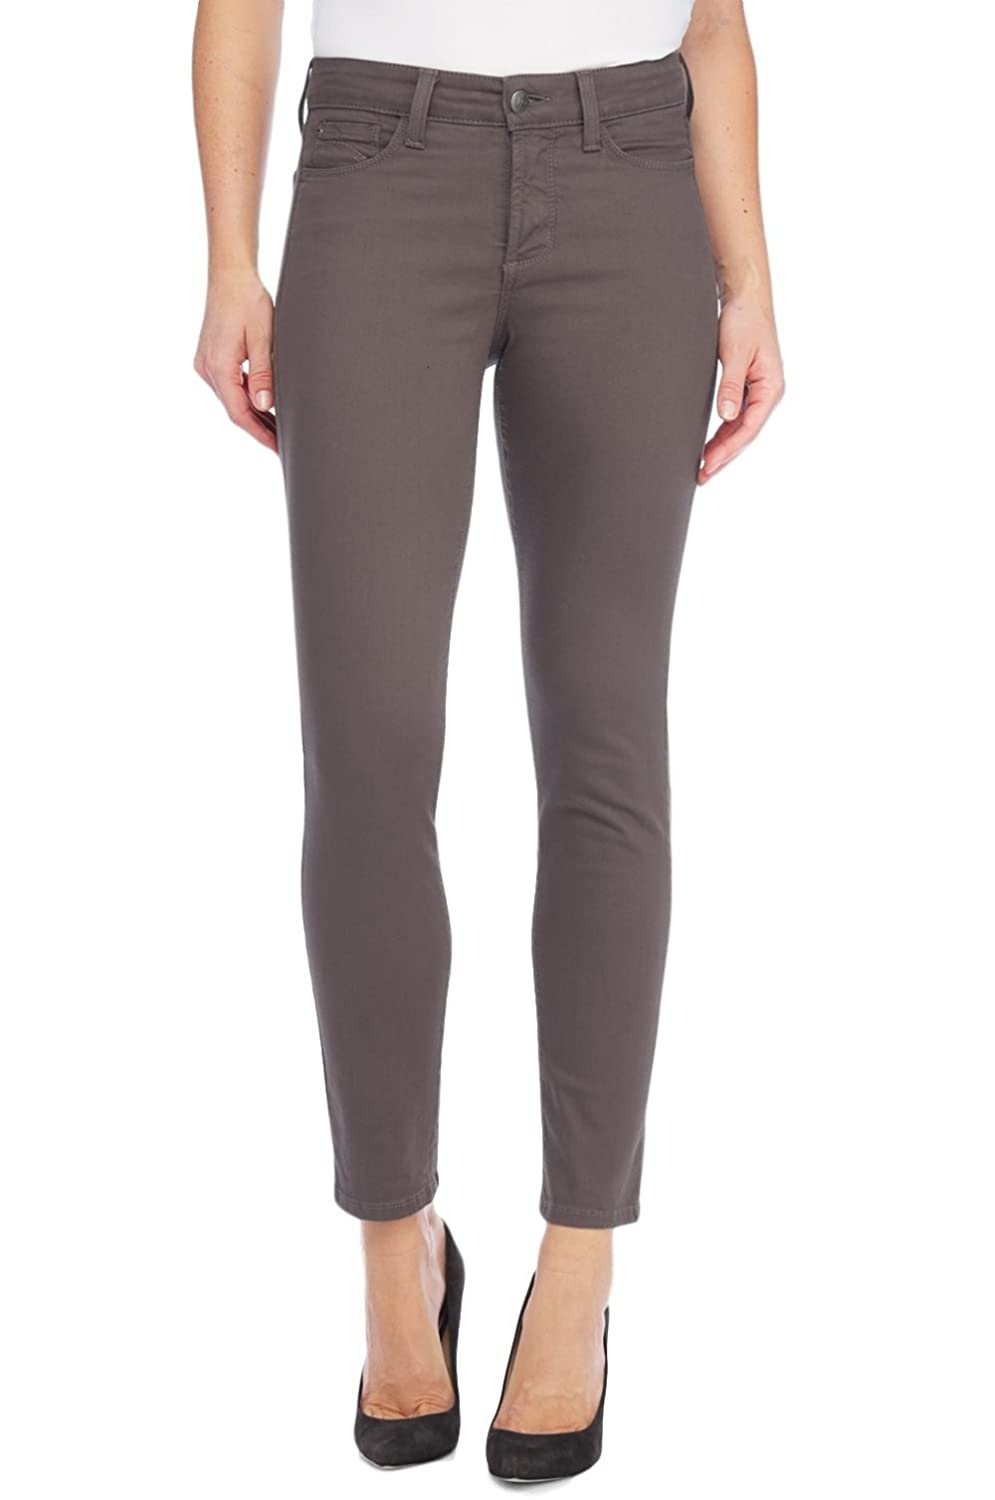 NYDJ Not Your Daughters Jeans Clarissa Ankle